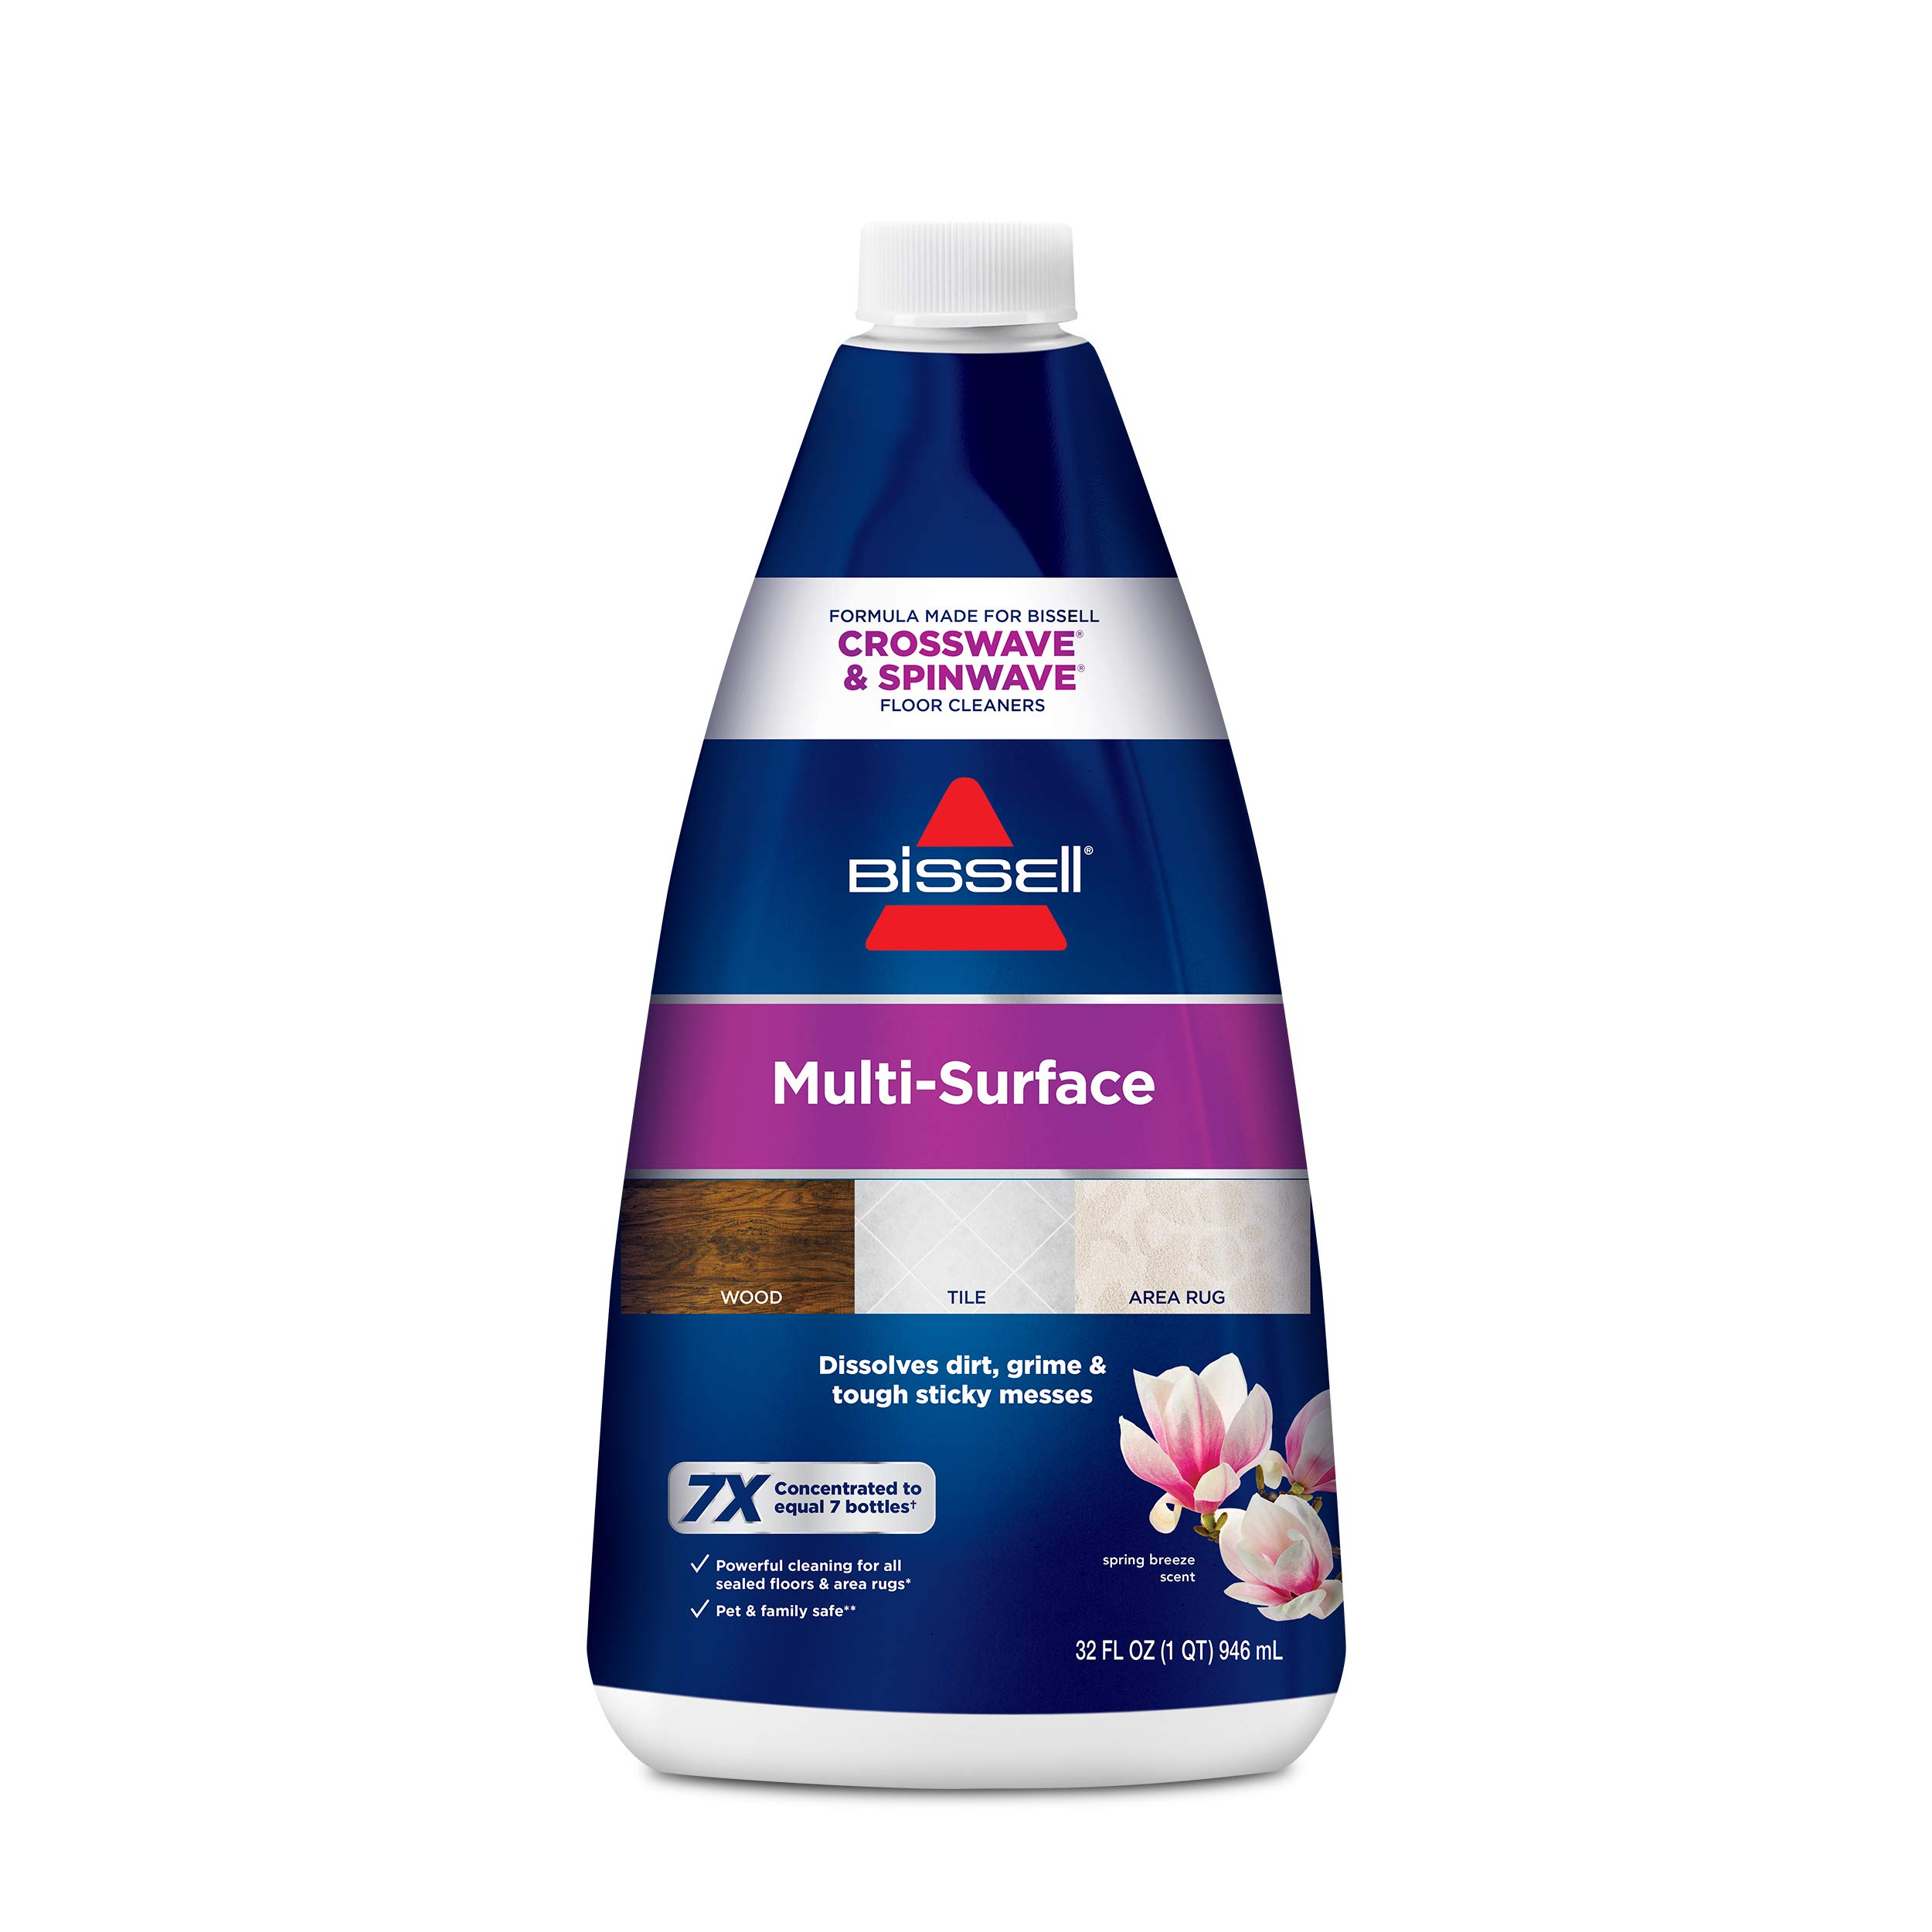 Bissell MultiSurface Floor Cleaning Formula-Crosswave and Spinwave (64 oz), 17891, Blue